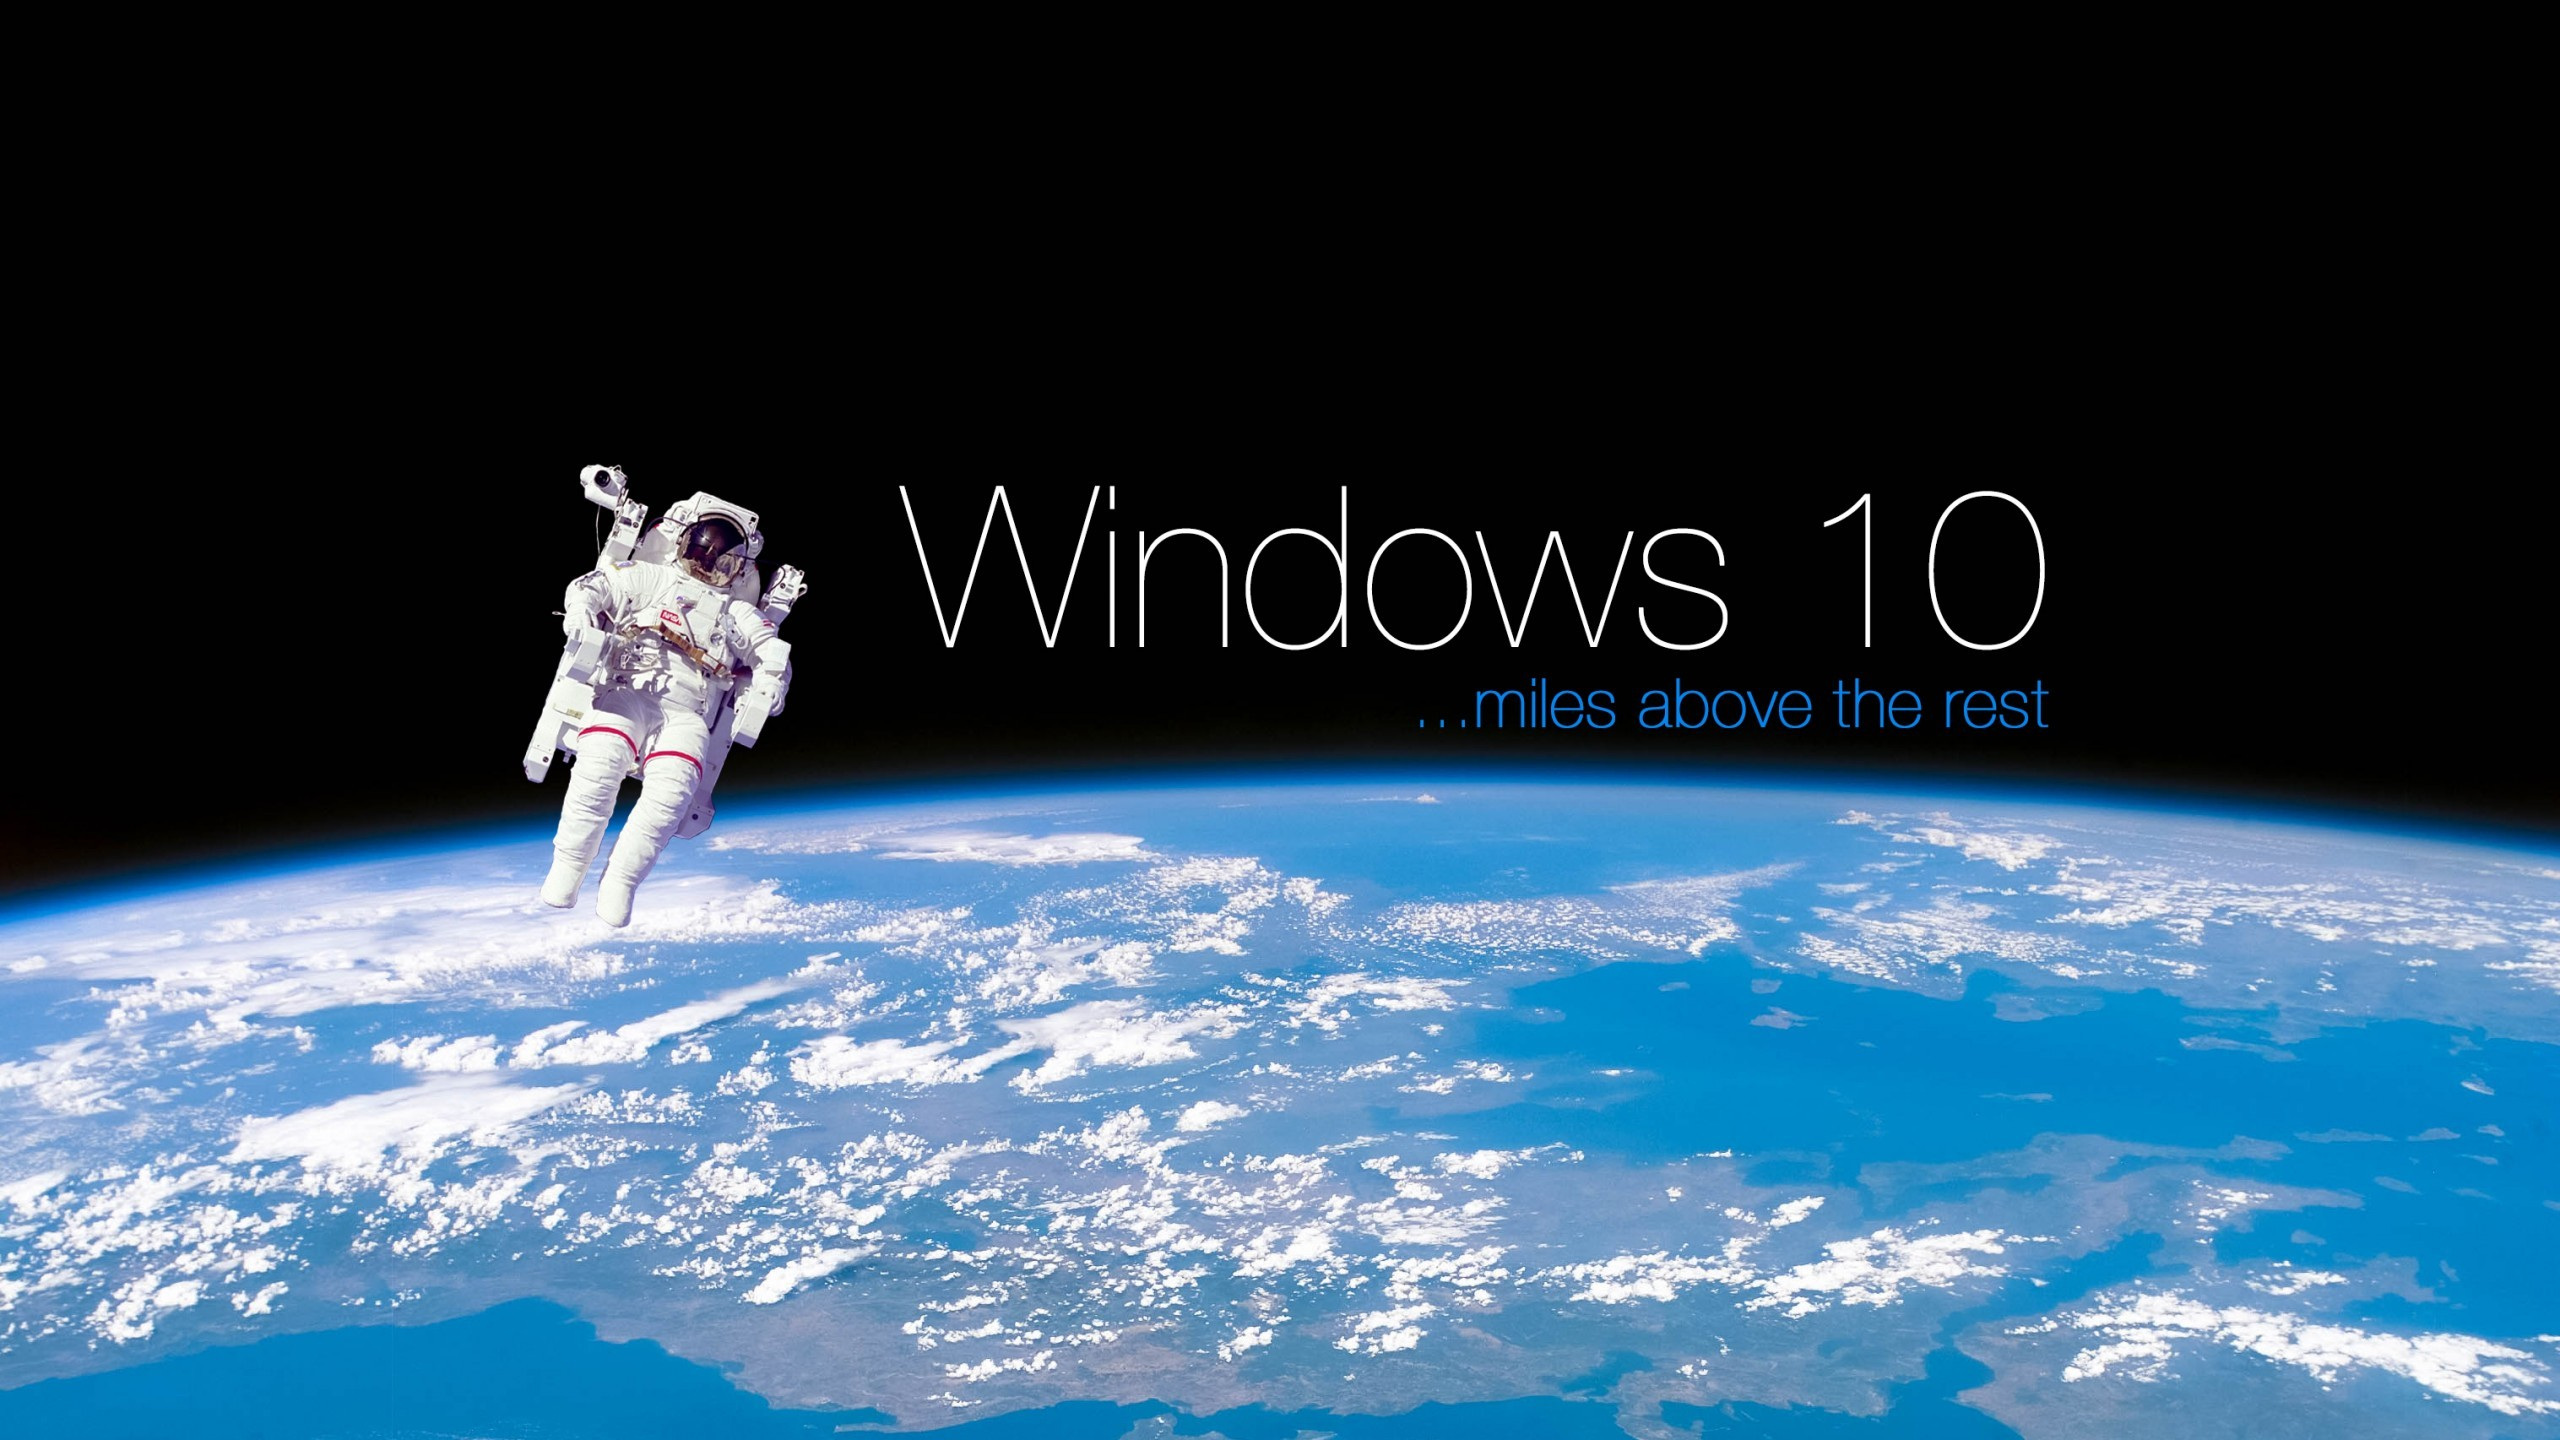 Windows 10 space 4k wallpaper. Press the download button to save, or:  Desktop users – Right click to save or set as desktop background. Mobile  users – Tap …